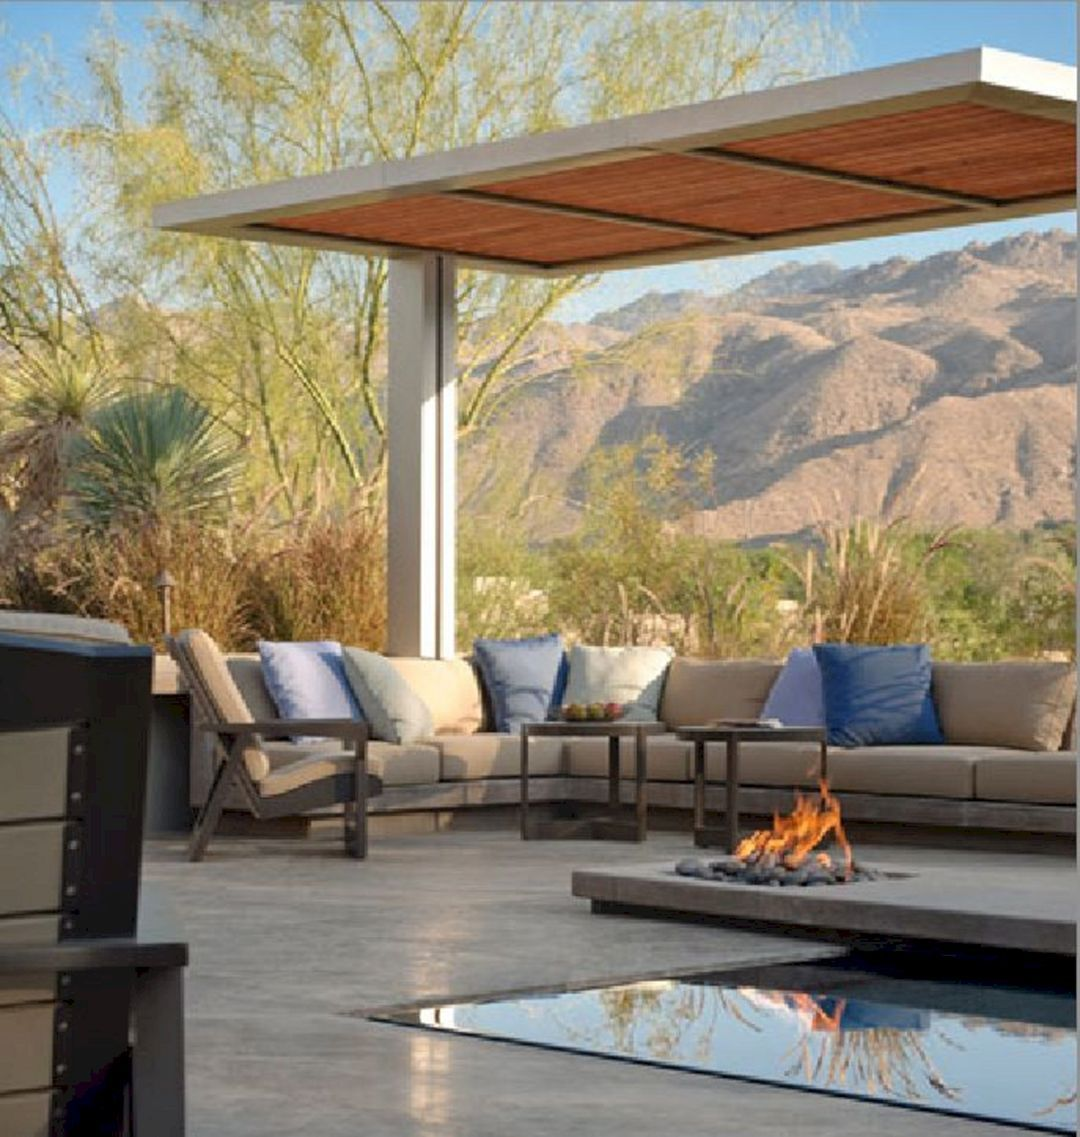 Pergola Ideas On A Budget: 12 Awesome Outdoor Living Space Decoration Ideas On A